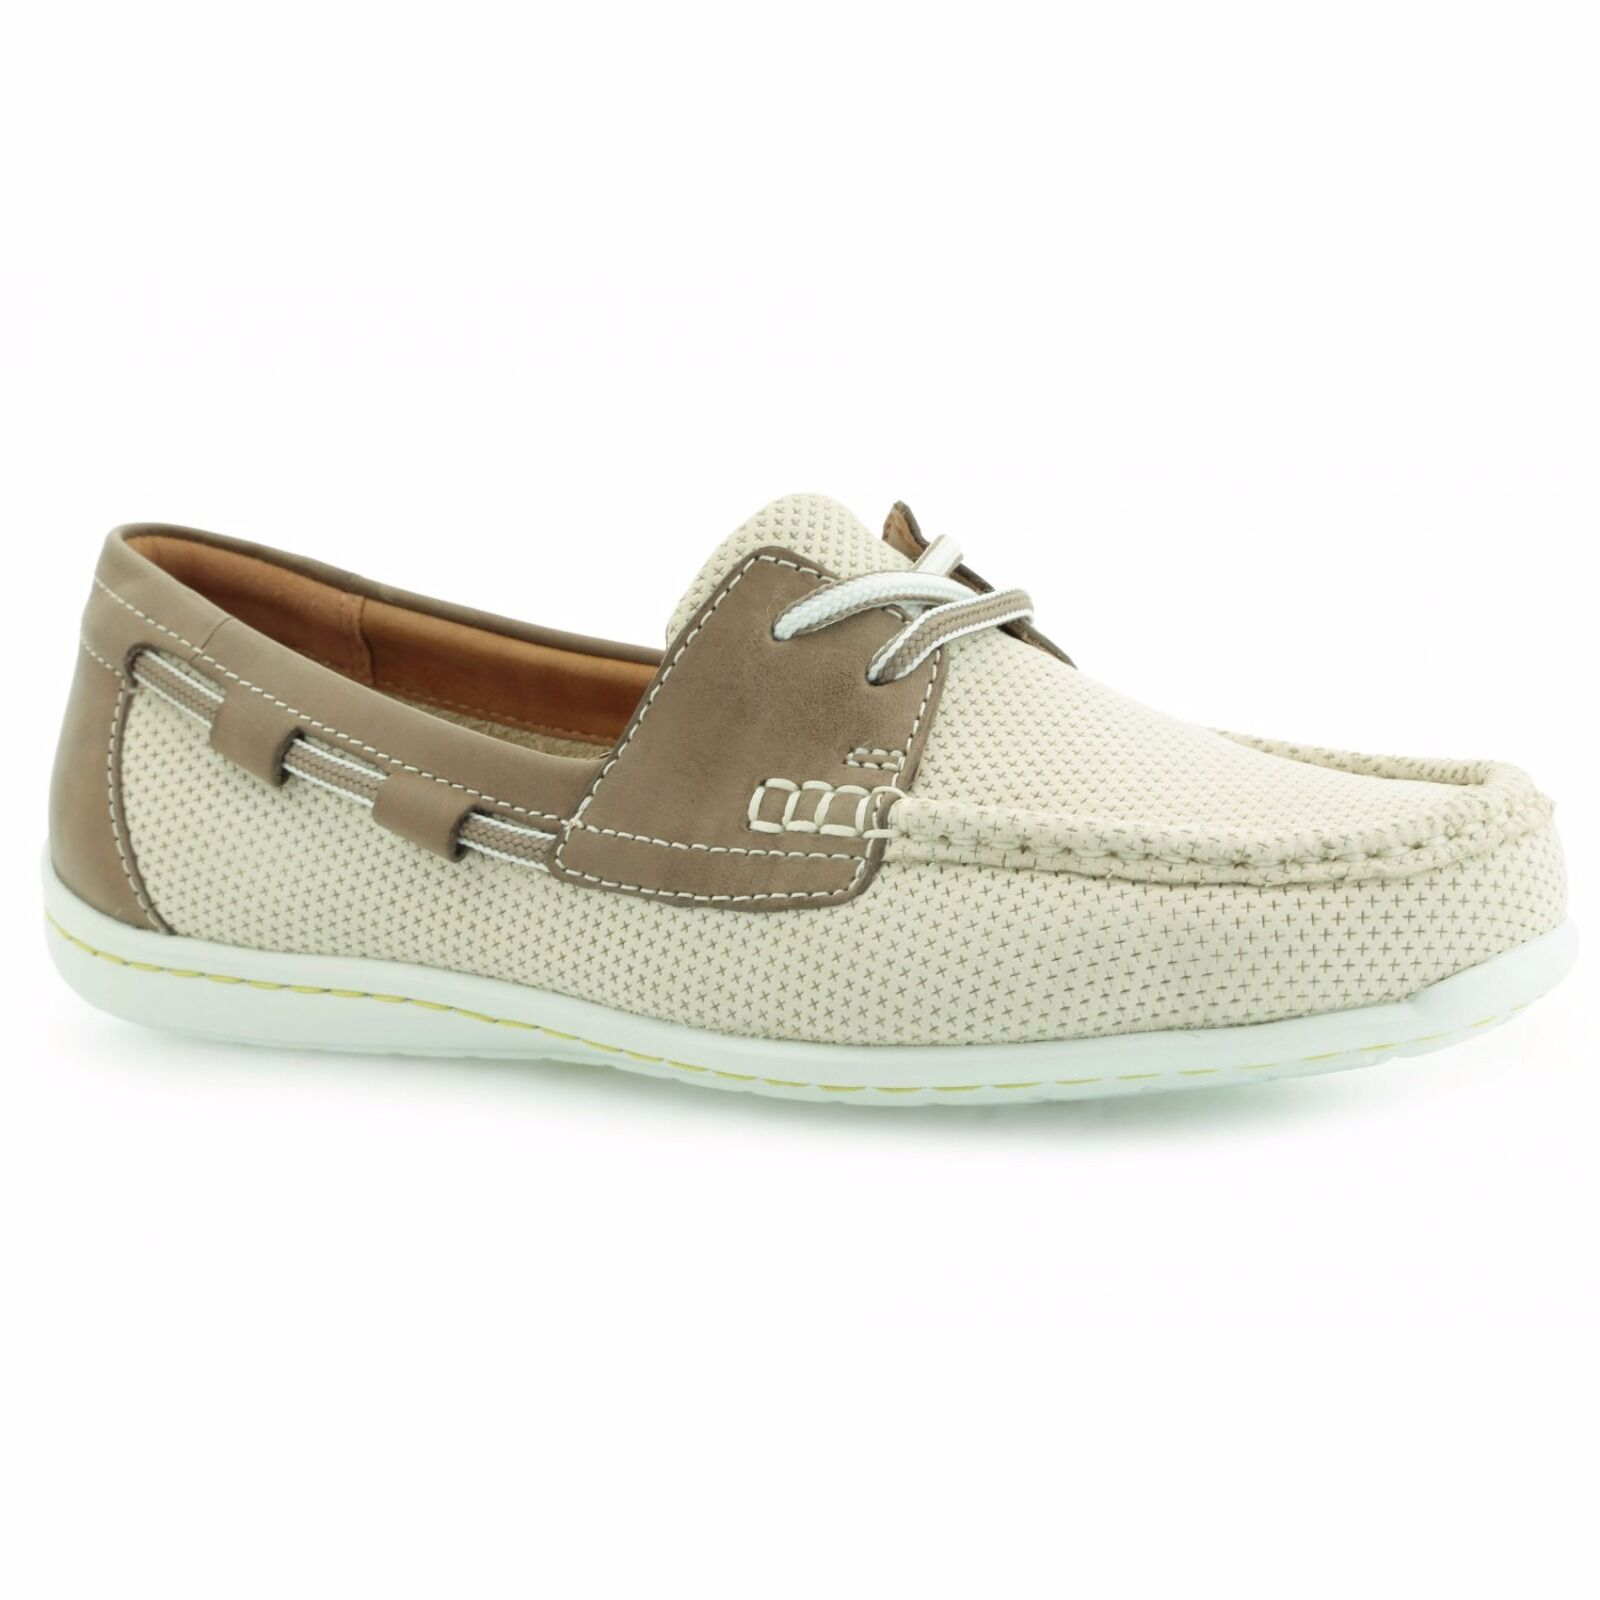 NEW Clarks Gaynor Sue off White Slip on Loafers shoes UK 5.5D